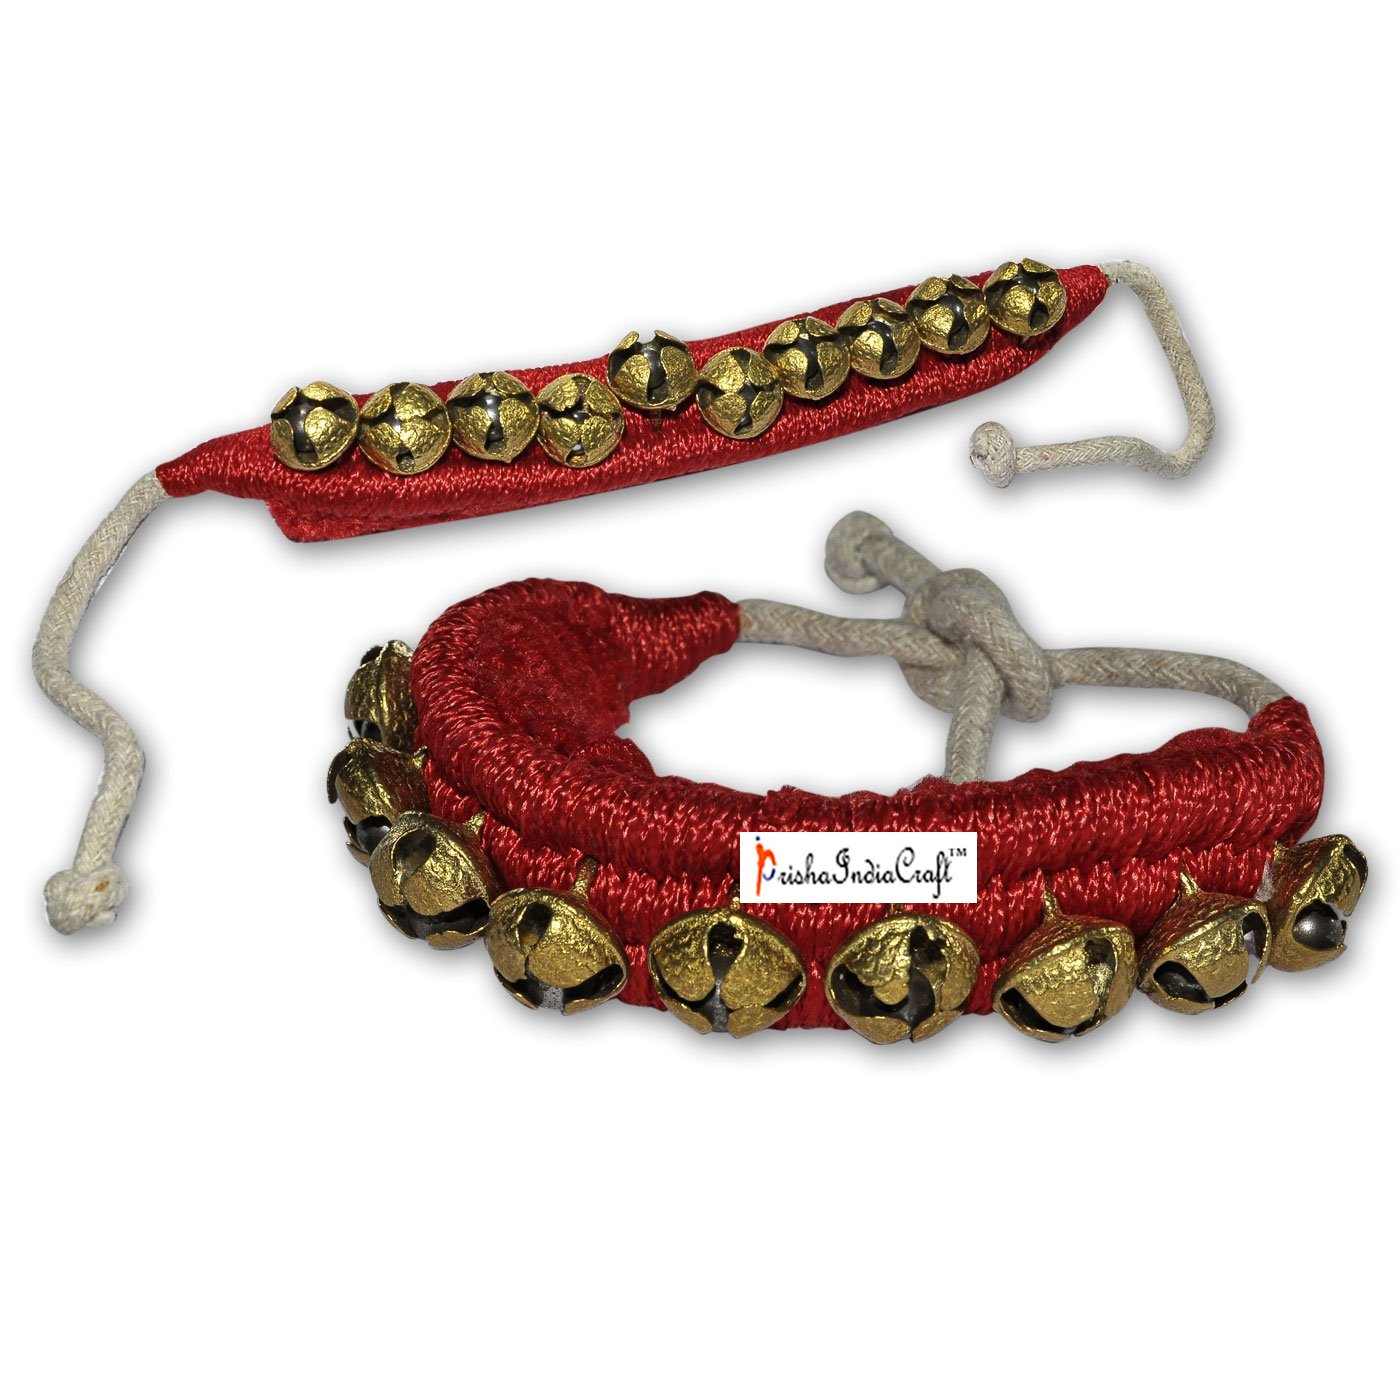 Prisha India Craft ® Kathak Ghungroo (16 No. Ghungroo) (1) One Line Big Dancing Bells Ghungroo Pair Handmade Indian Classical Dance Accessories Bharatnatyam, Kuchipudi, Odissi Ghungru Red Pad